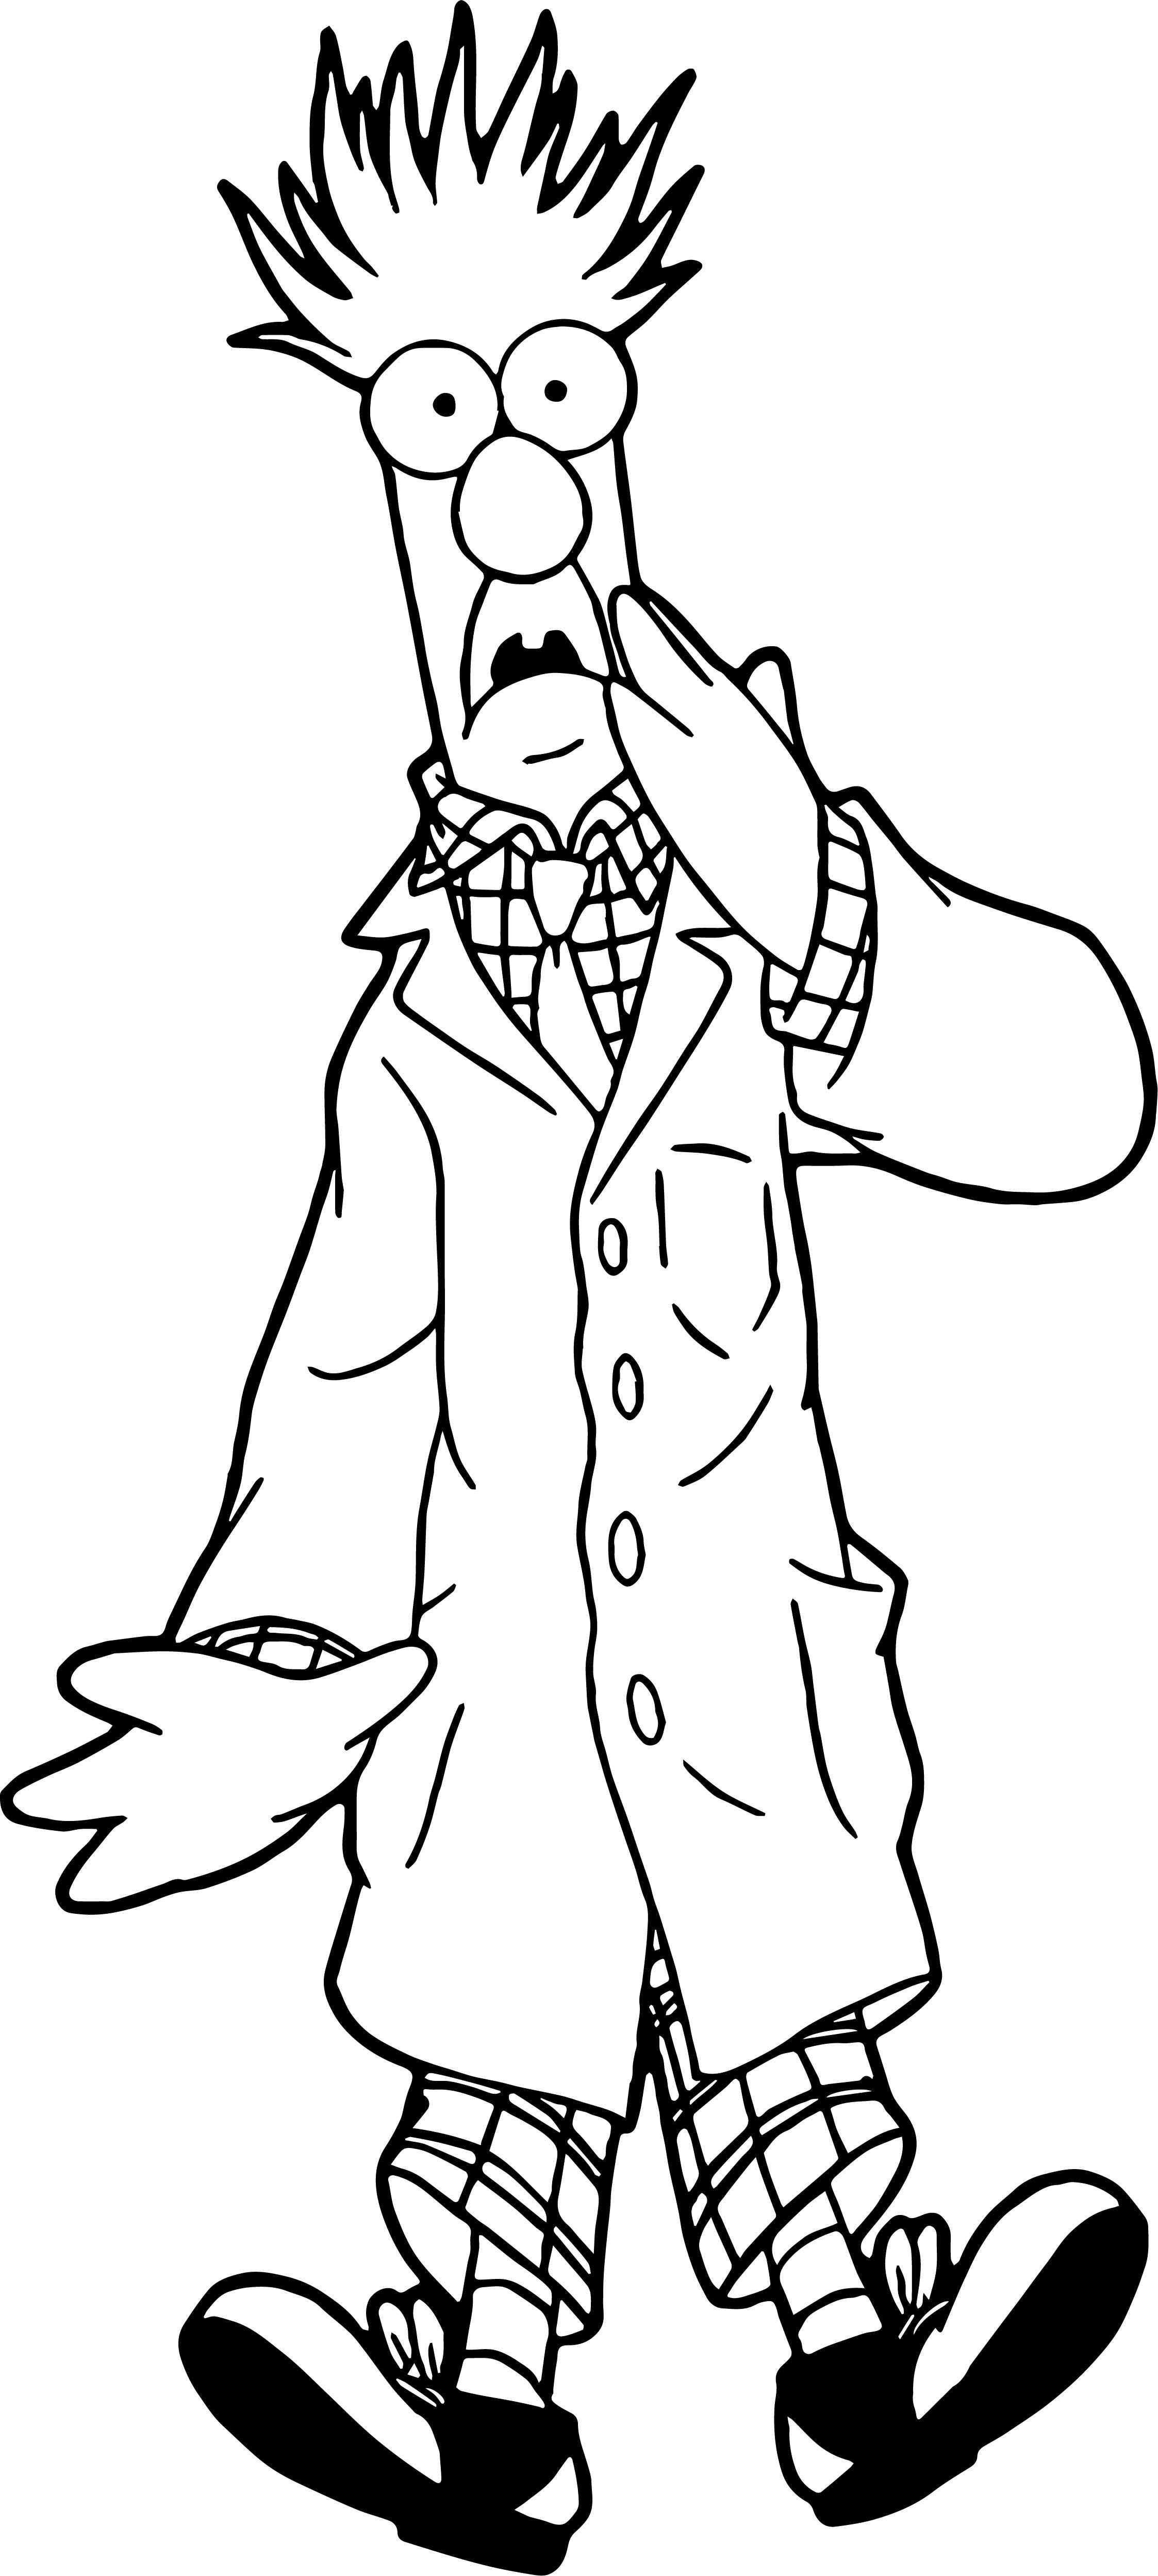 Cool The Muppets Beaker Coloring Pages Muppets Coloring Pages